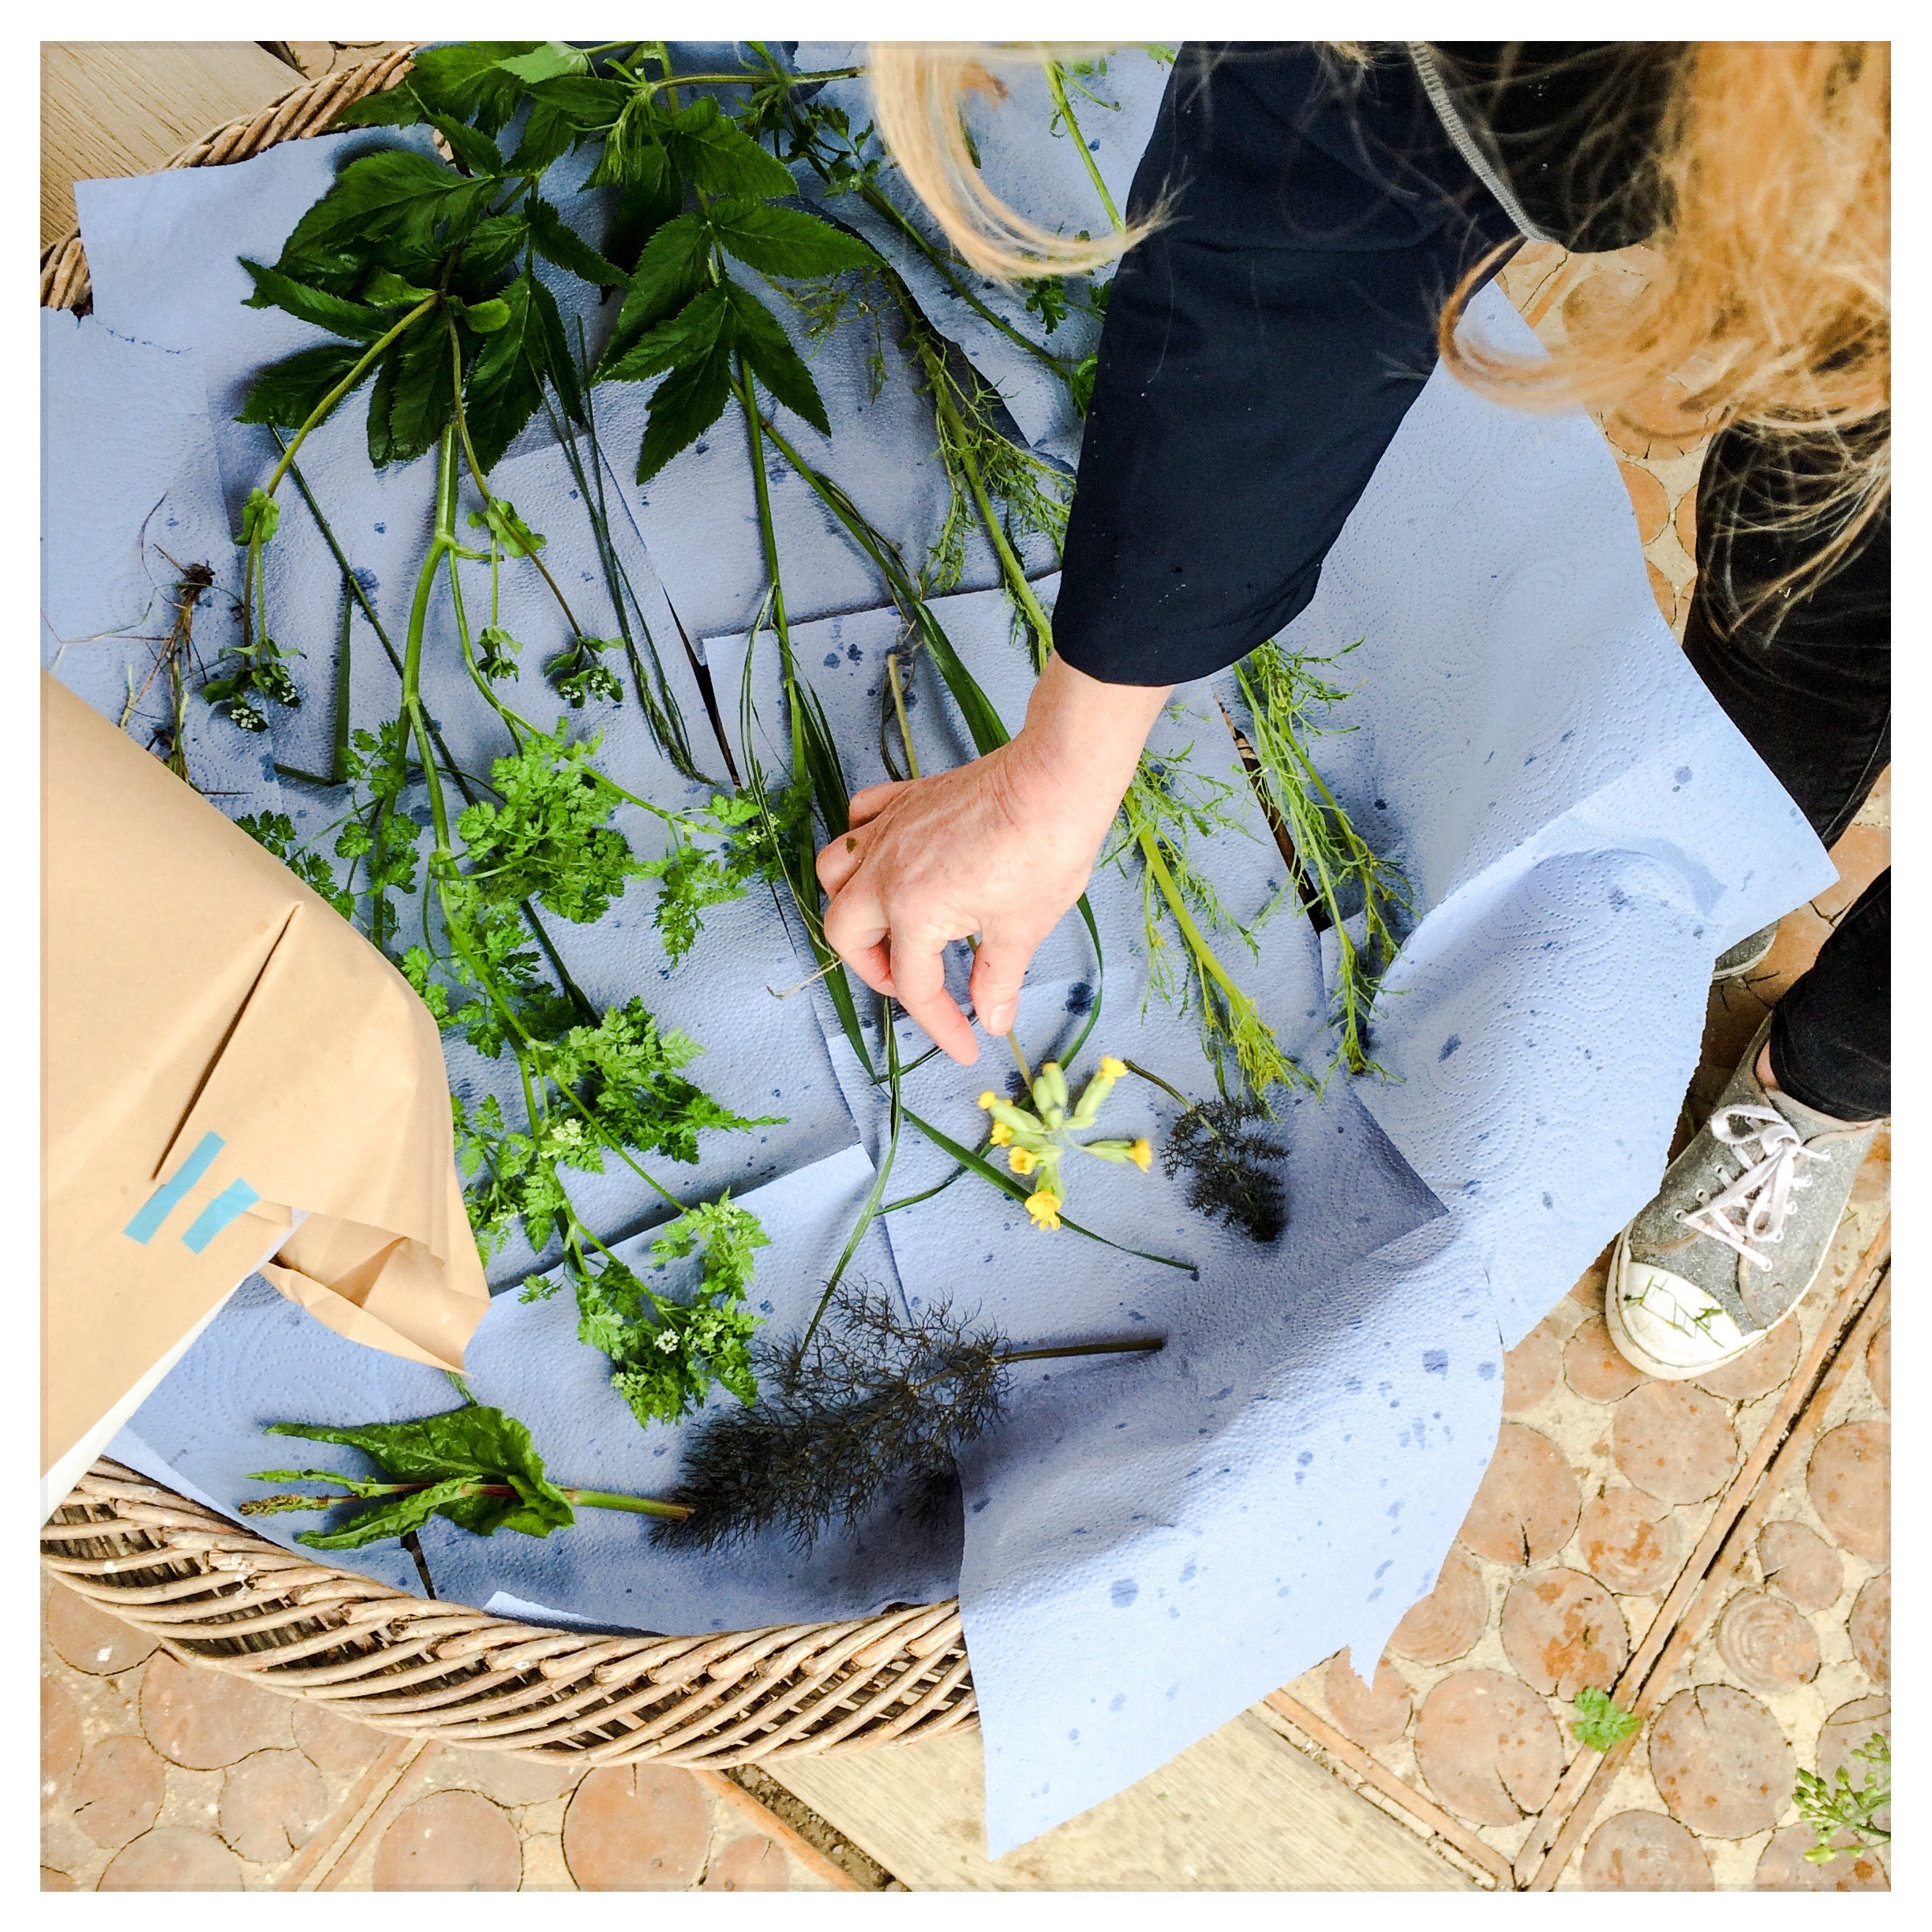 Drying rainswept herbs at the May workshop at Daylesford.